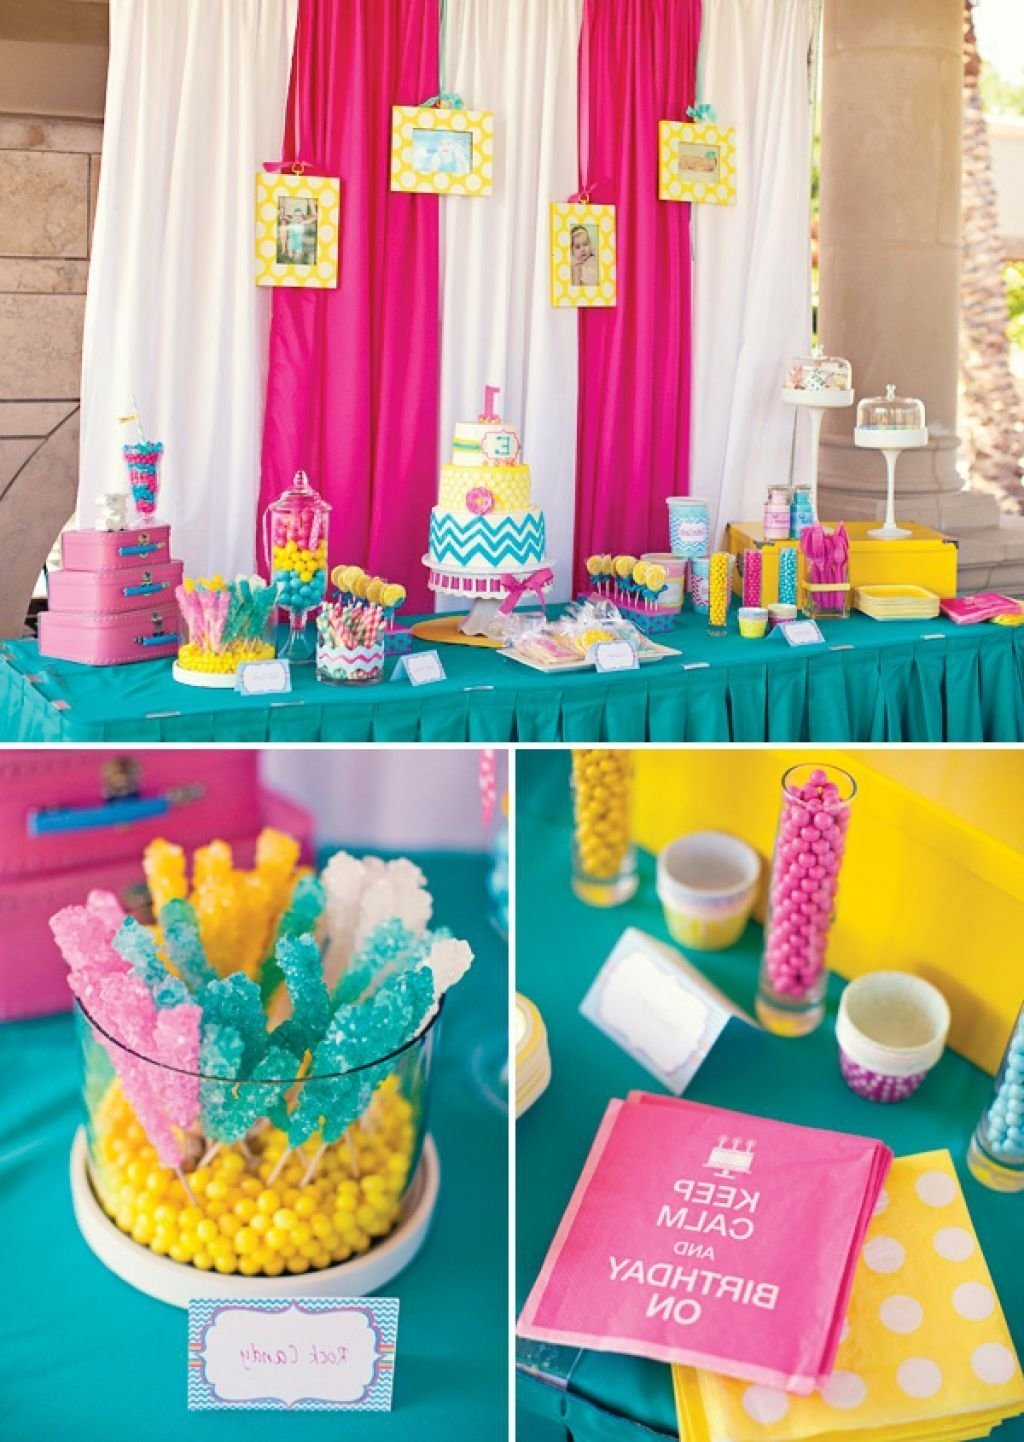 10 Best 7 Year Old Birthday Party Ideas outdoor party decorations google search madeline pinterest 8 2020